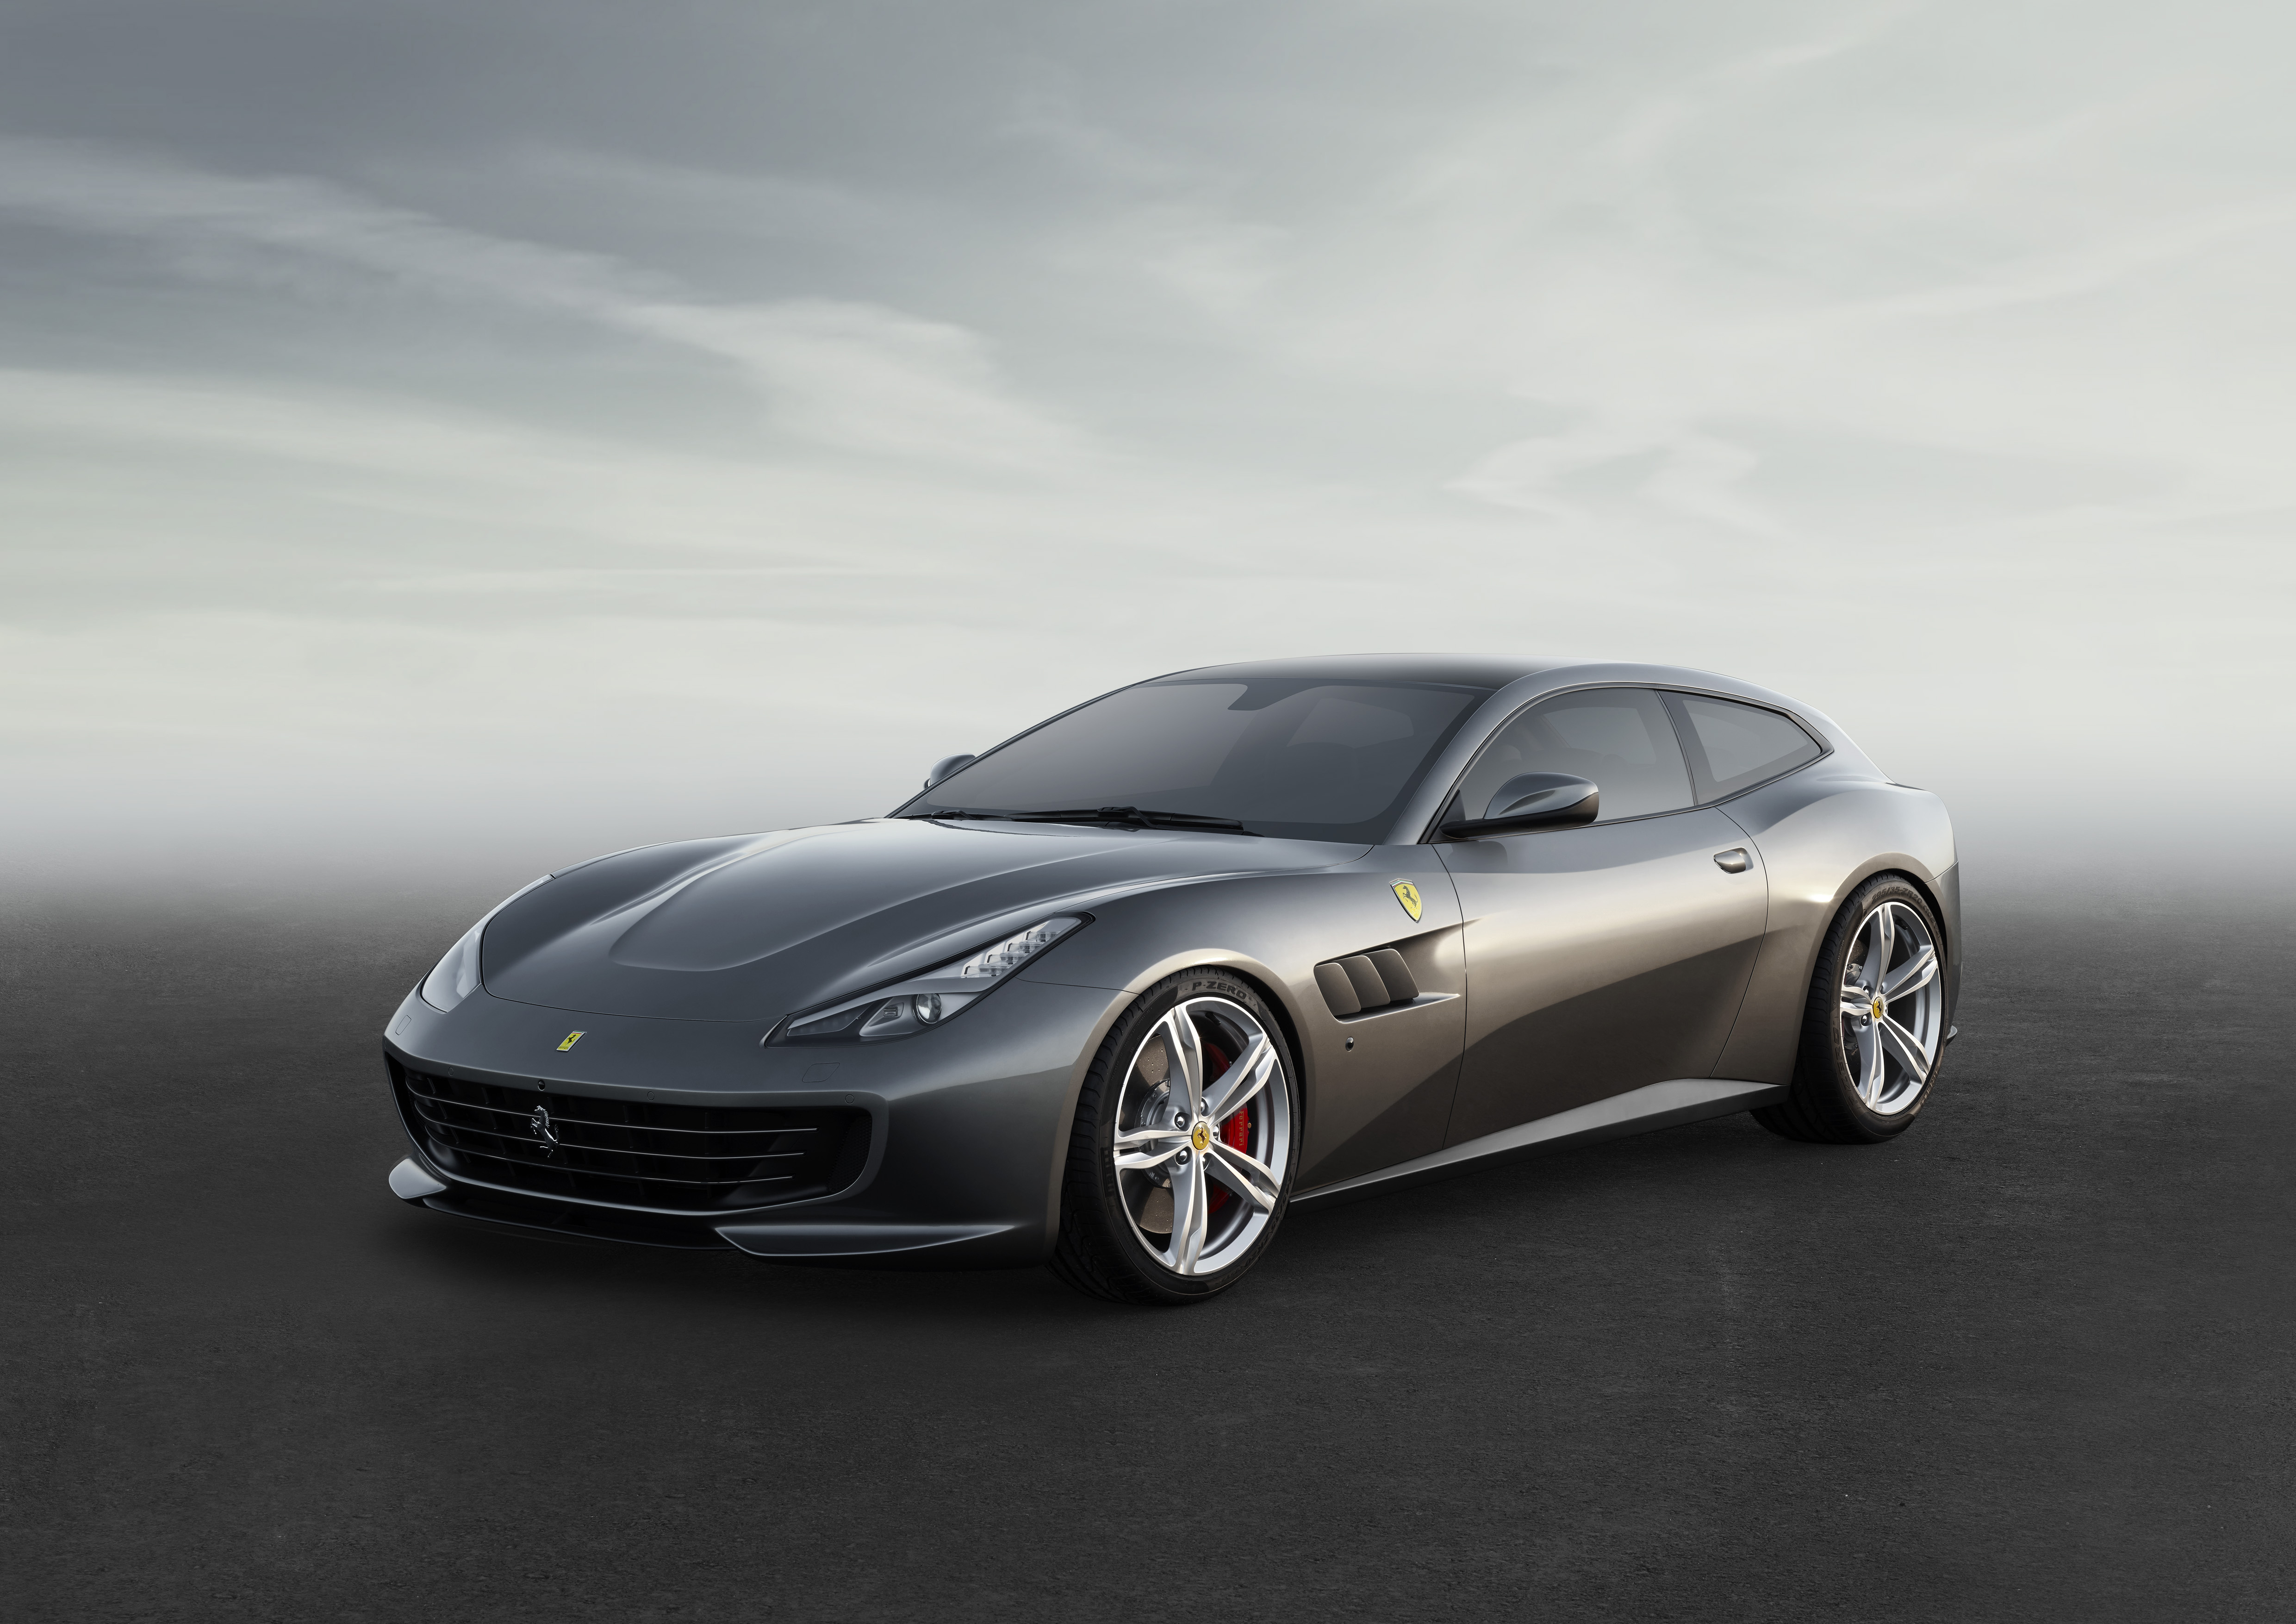 The Closest Thing To A Ferrari Family Car Is Now Gtc4lusso